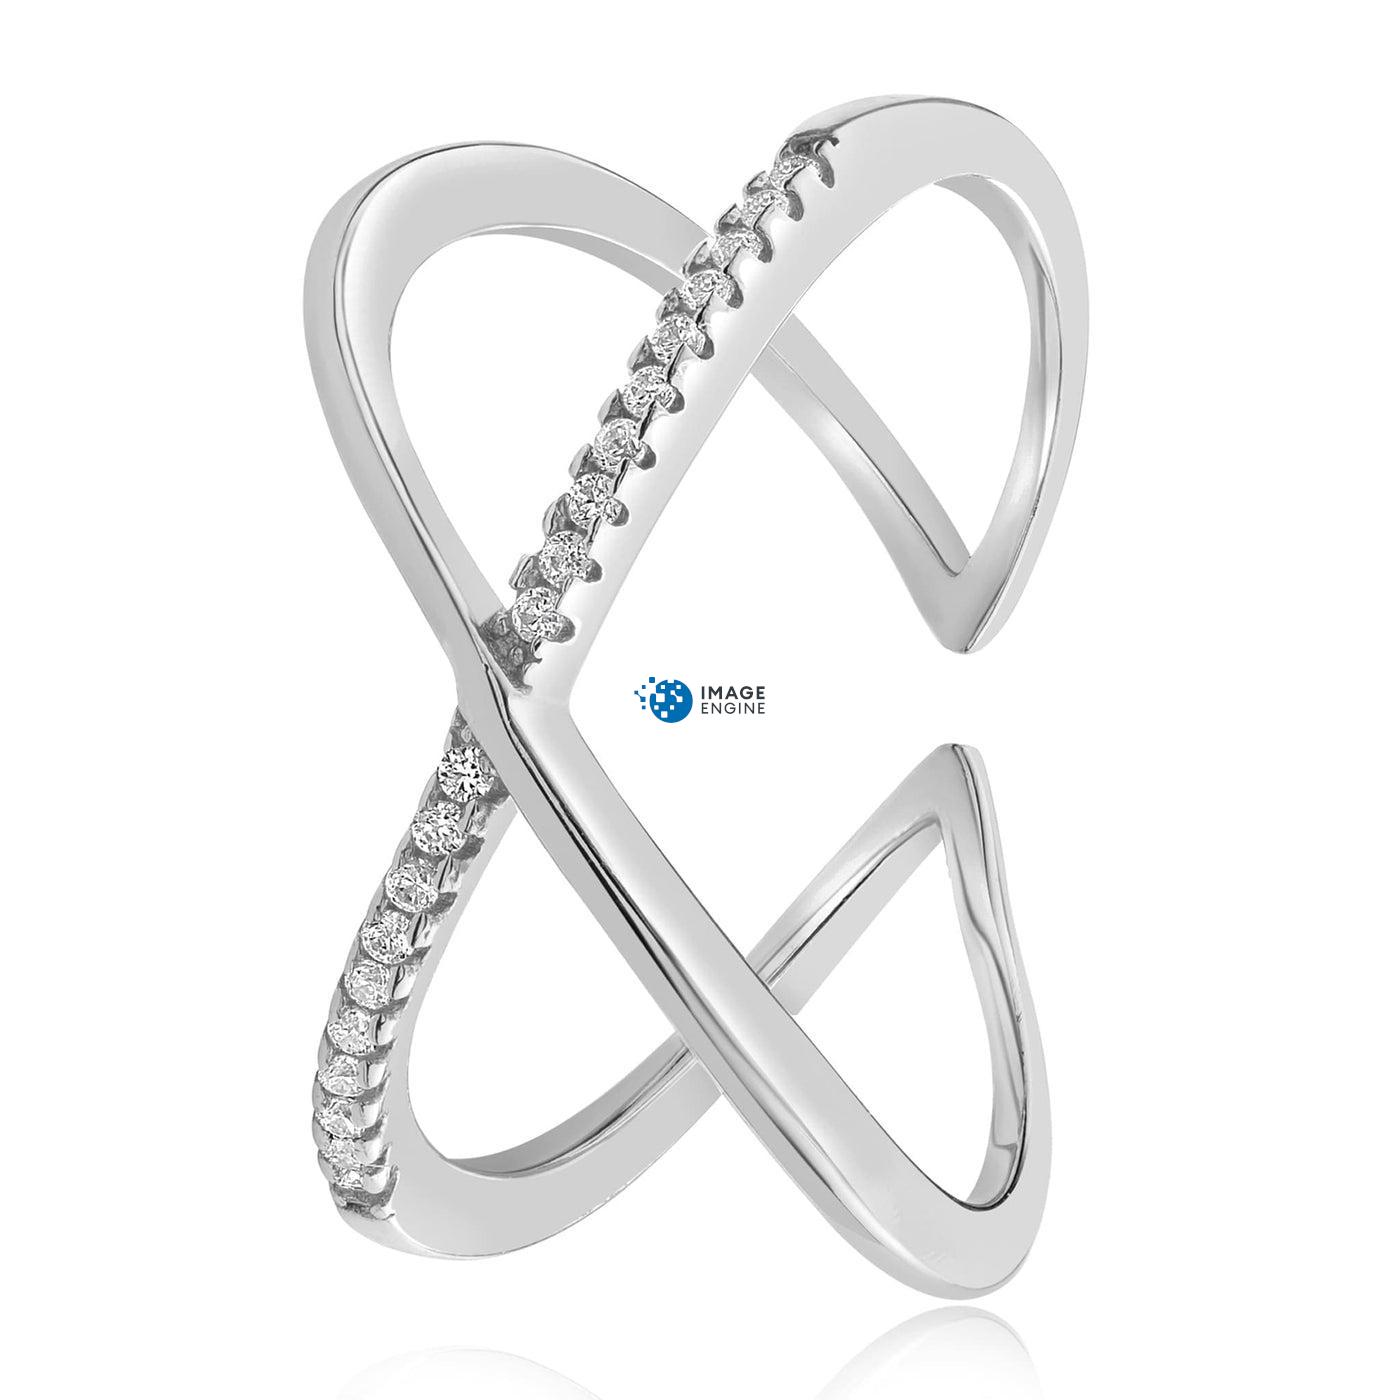 Nadia X Infinity Ring - Side View - 925 Sterling Silver